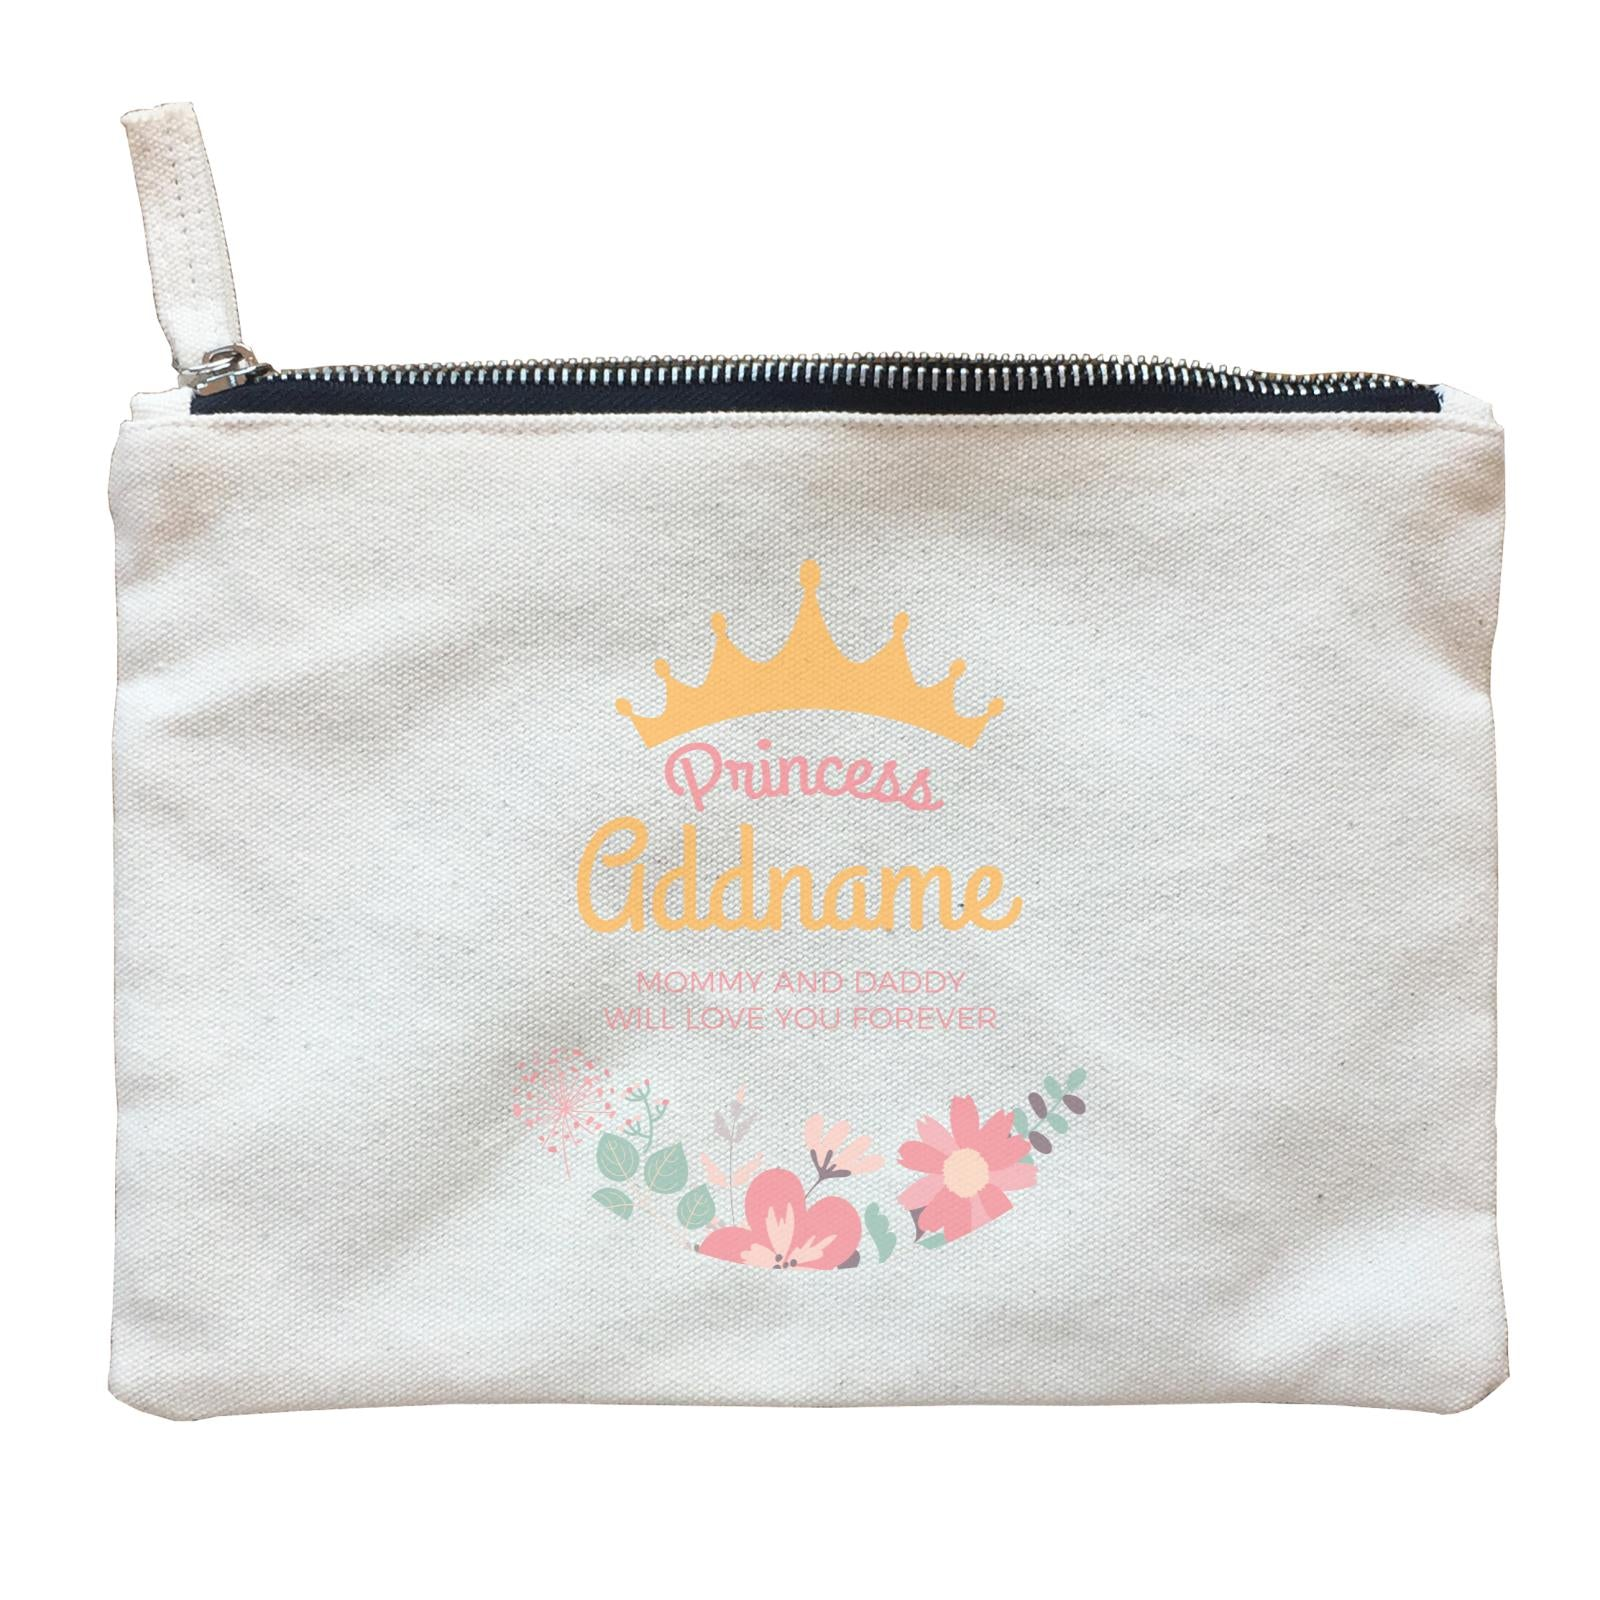 Princess with Tiara and Flowers 2 Personalizable with Name and Text Zipper Pouch